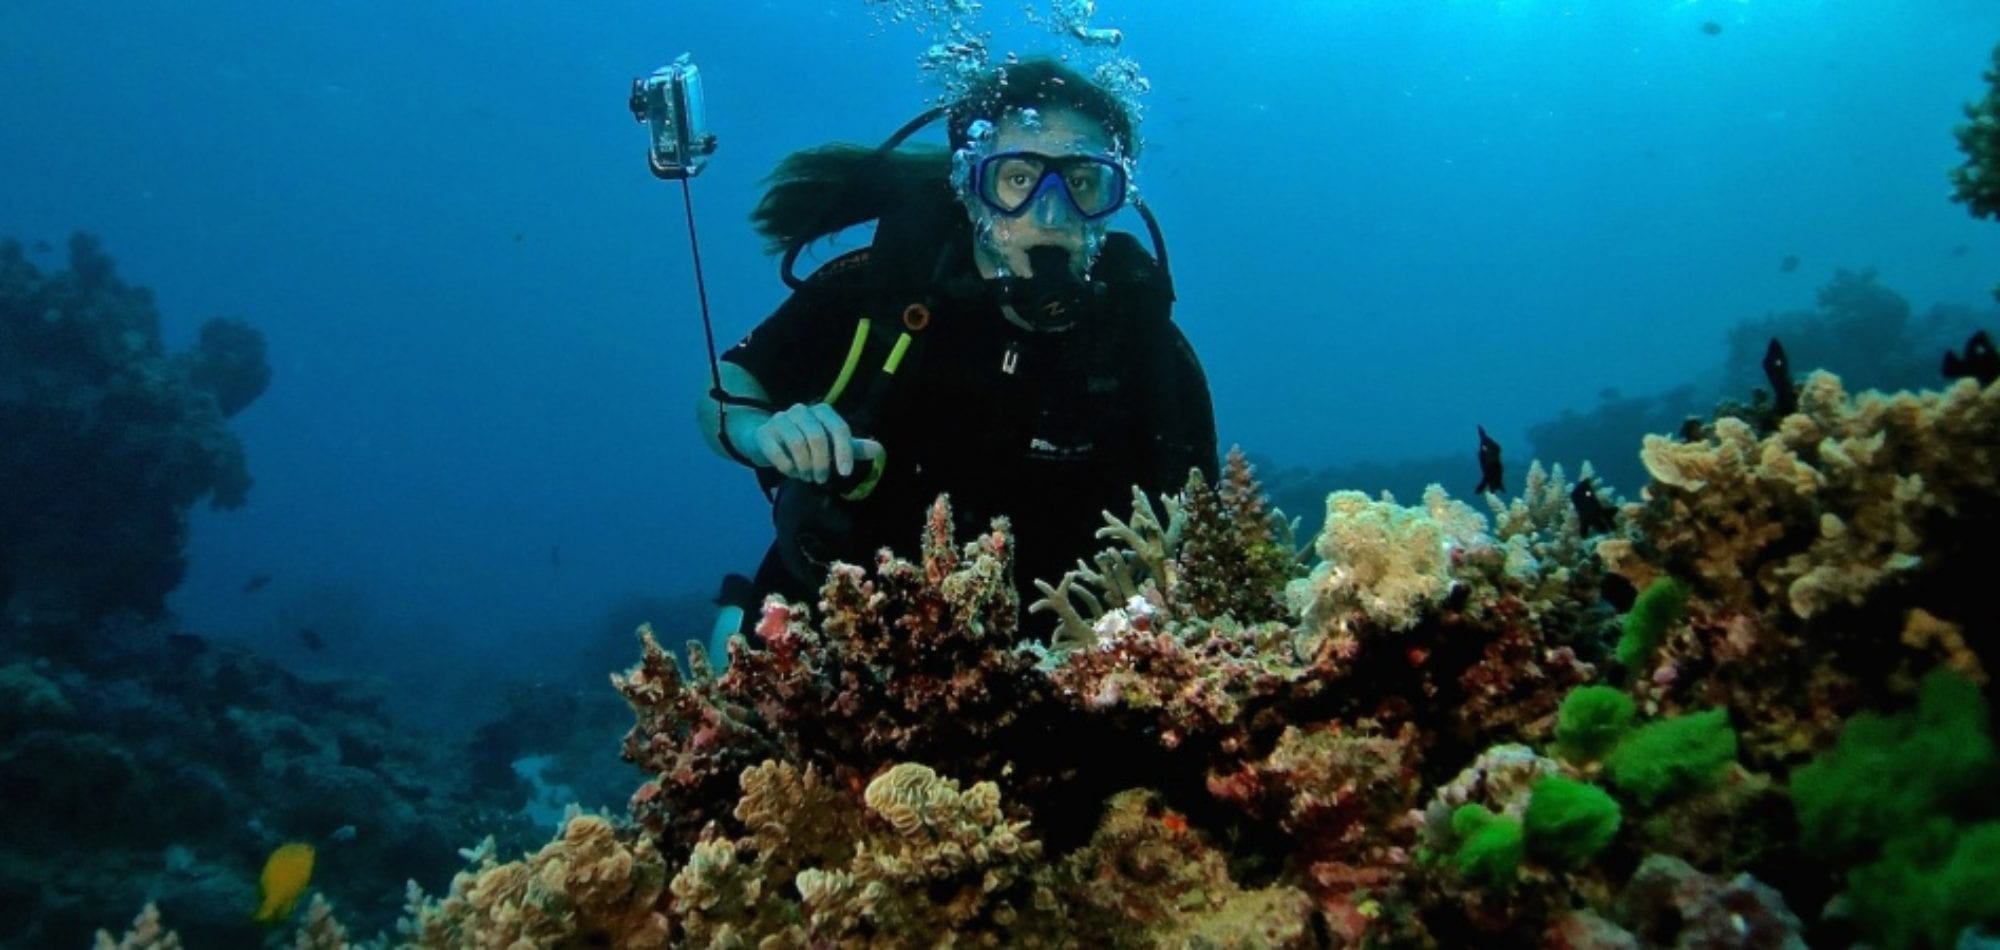 Cairns reef trip - scuba diver on the Great Barrier Reef